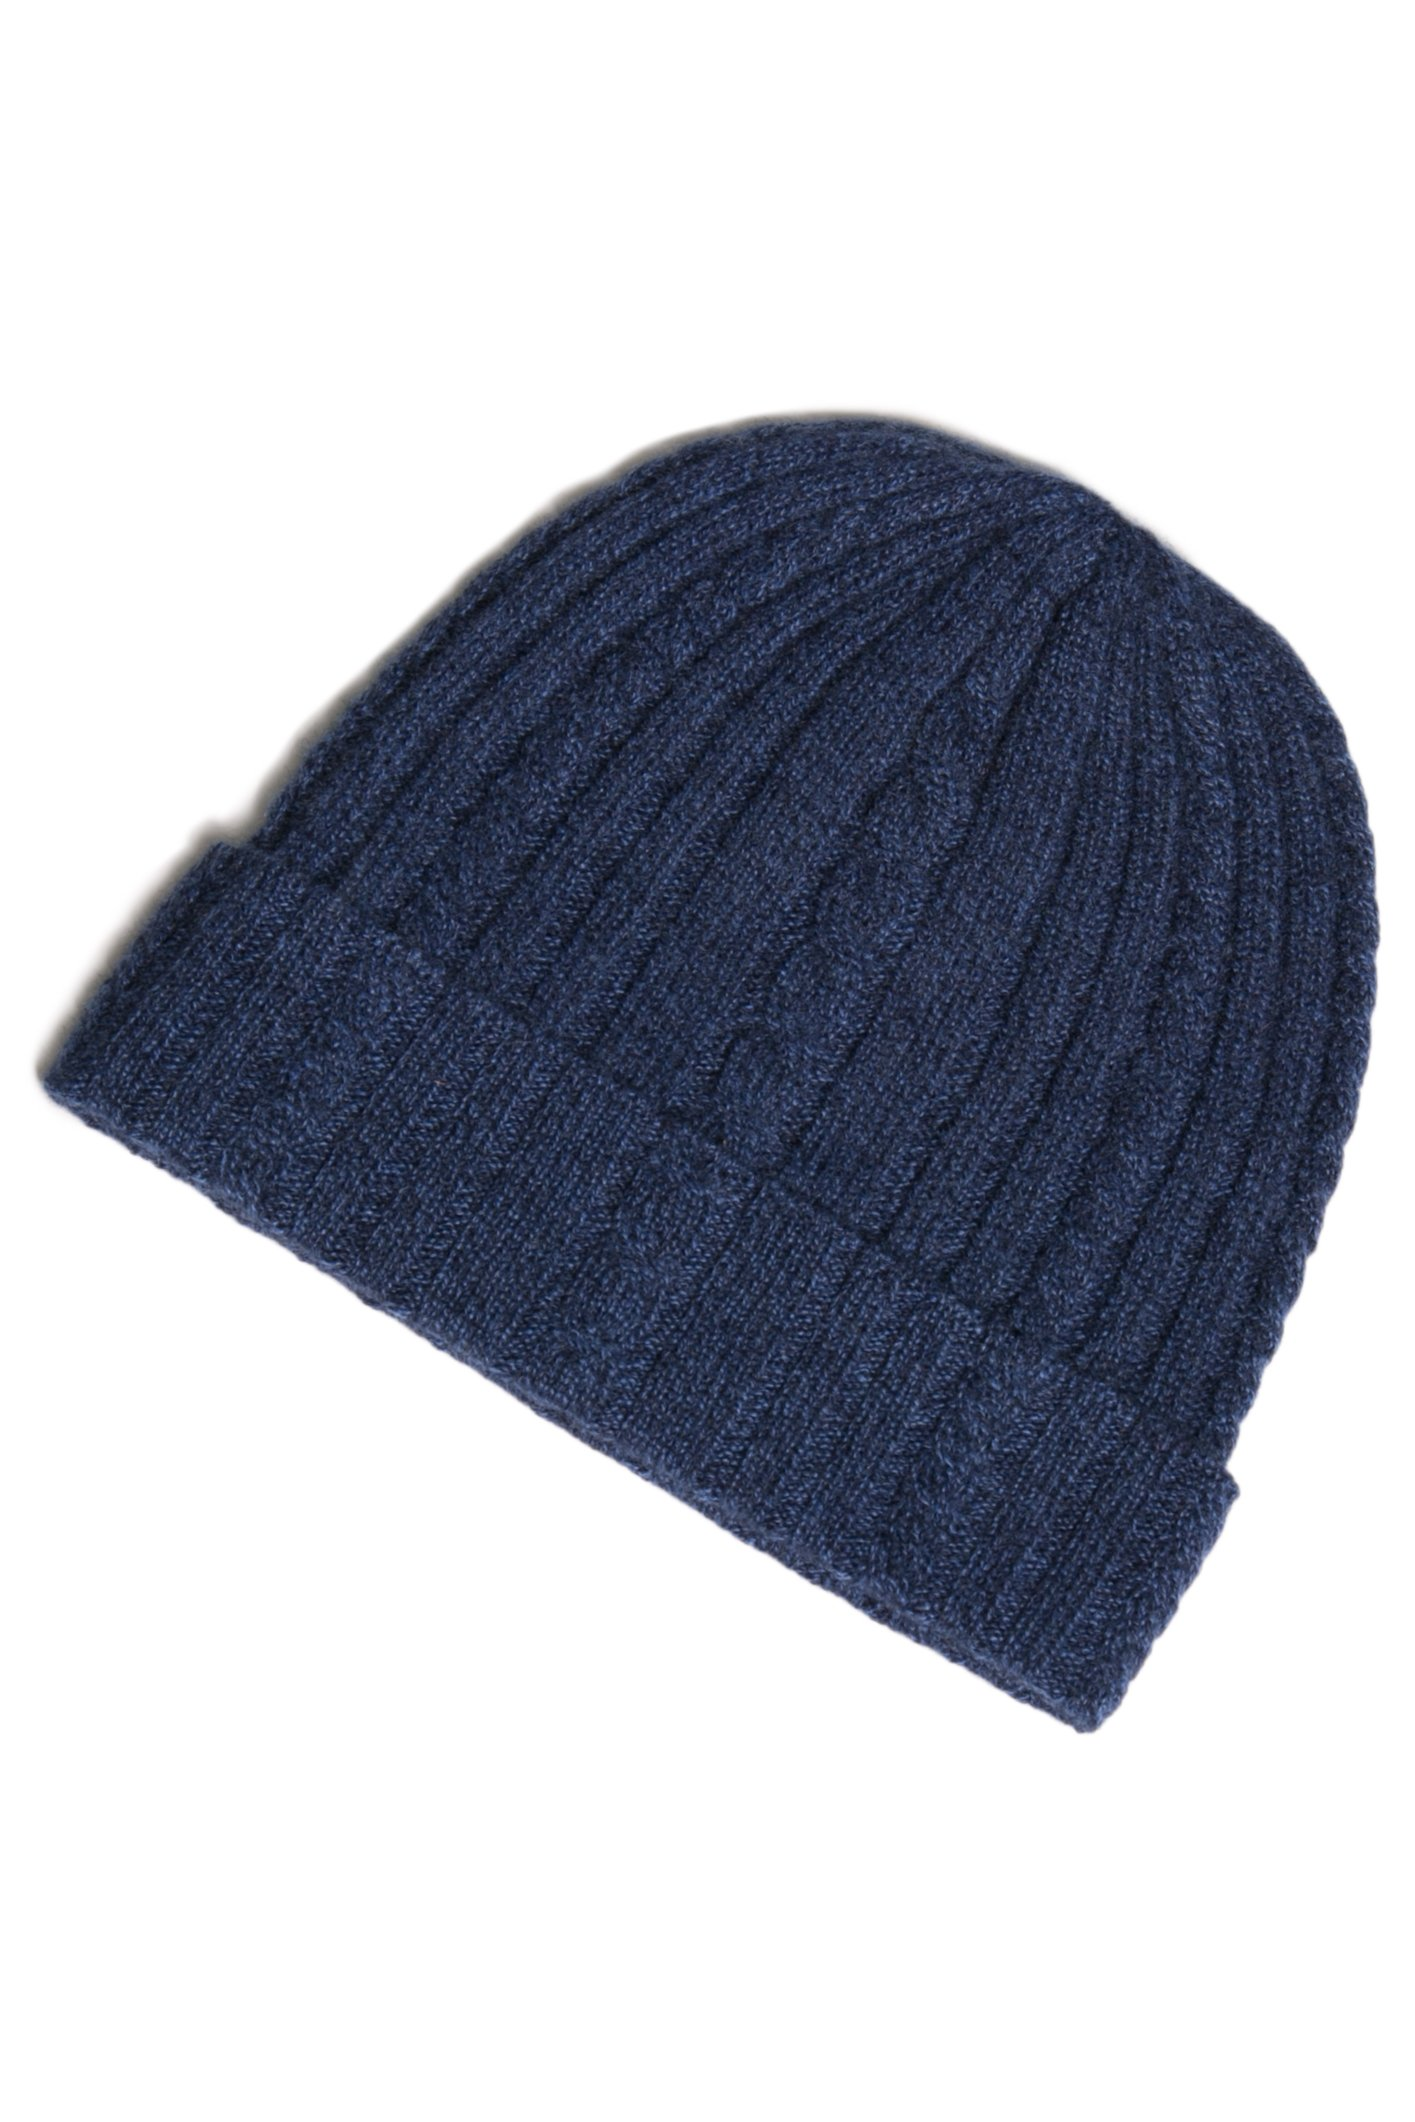 Fishers Finery Women's 100% Cashmere Cable Knit Hat; Super Soft (Heather Navy)